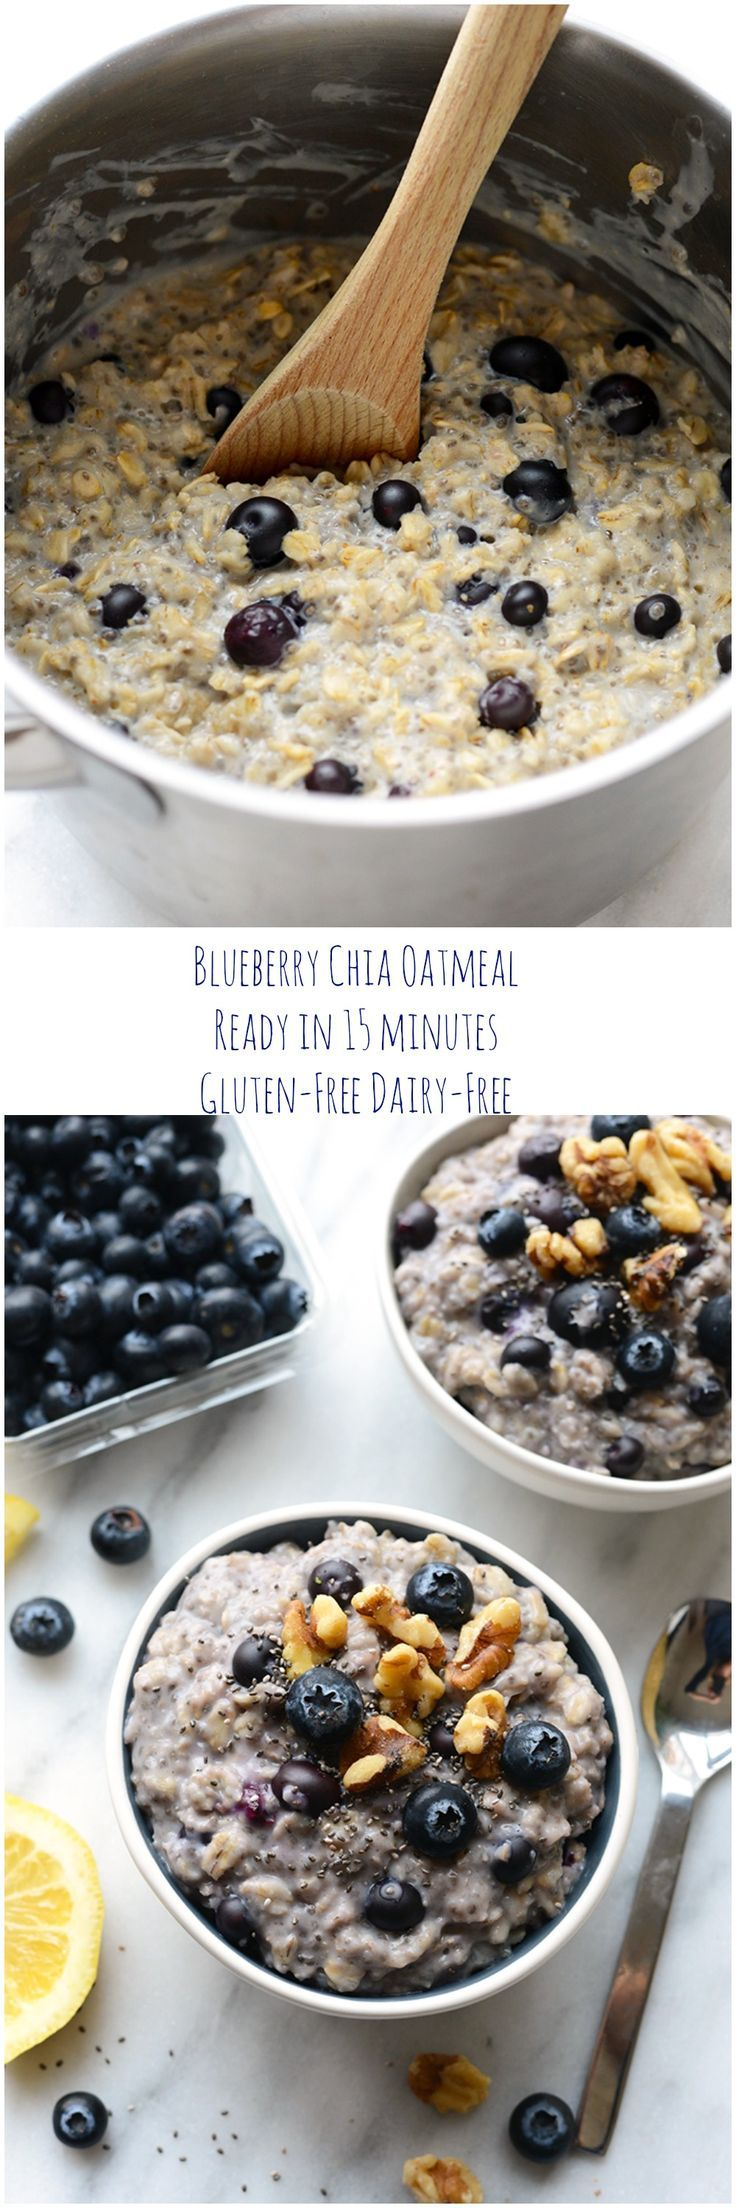 57 Best Breakfast Images On Pinterest Drink And Healthy Tara Omega Q 120 Blueberry Chia Oatmeal Ready In Just 15 Minutes This Is Filled With